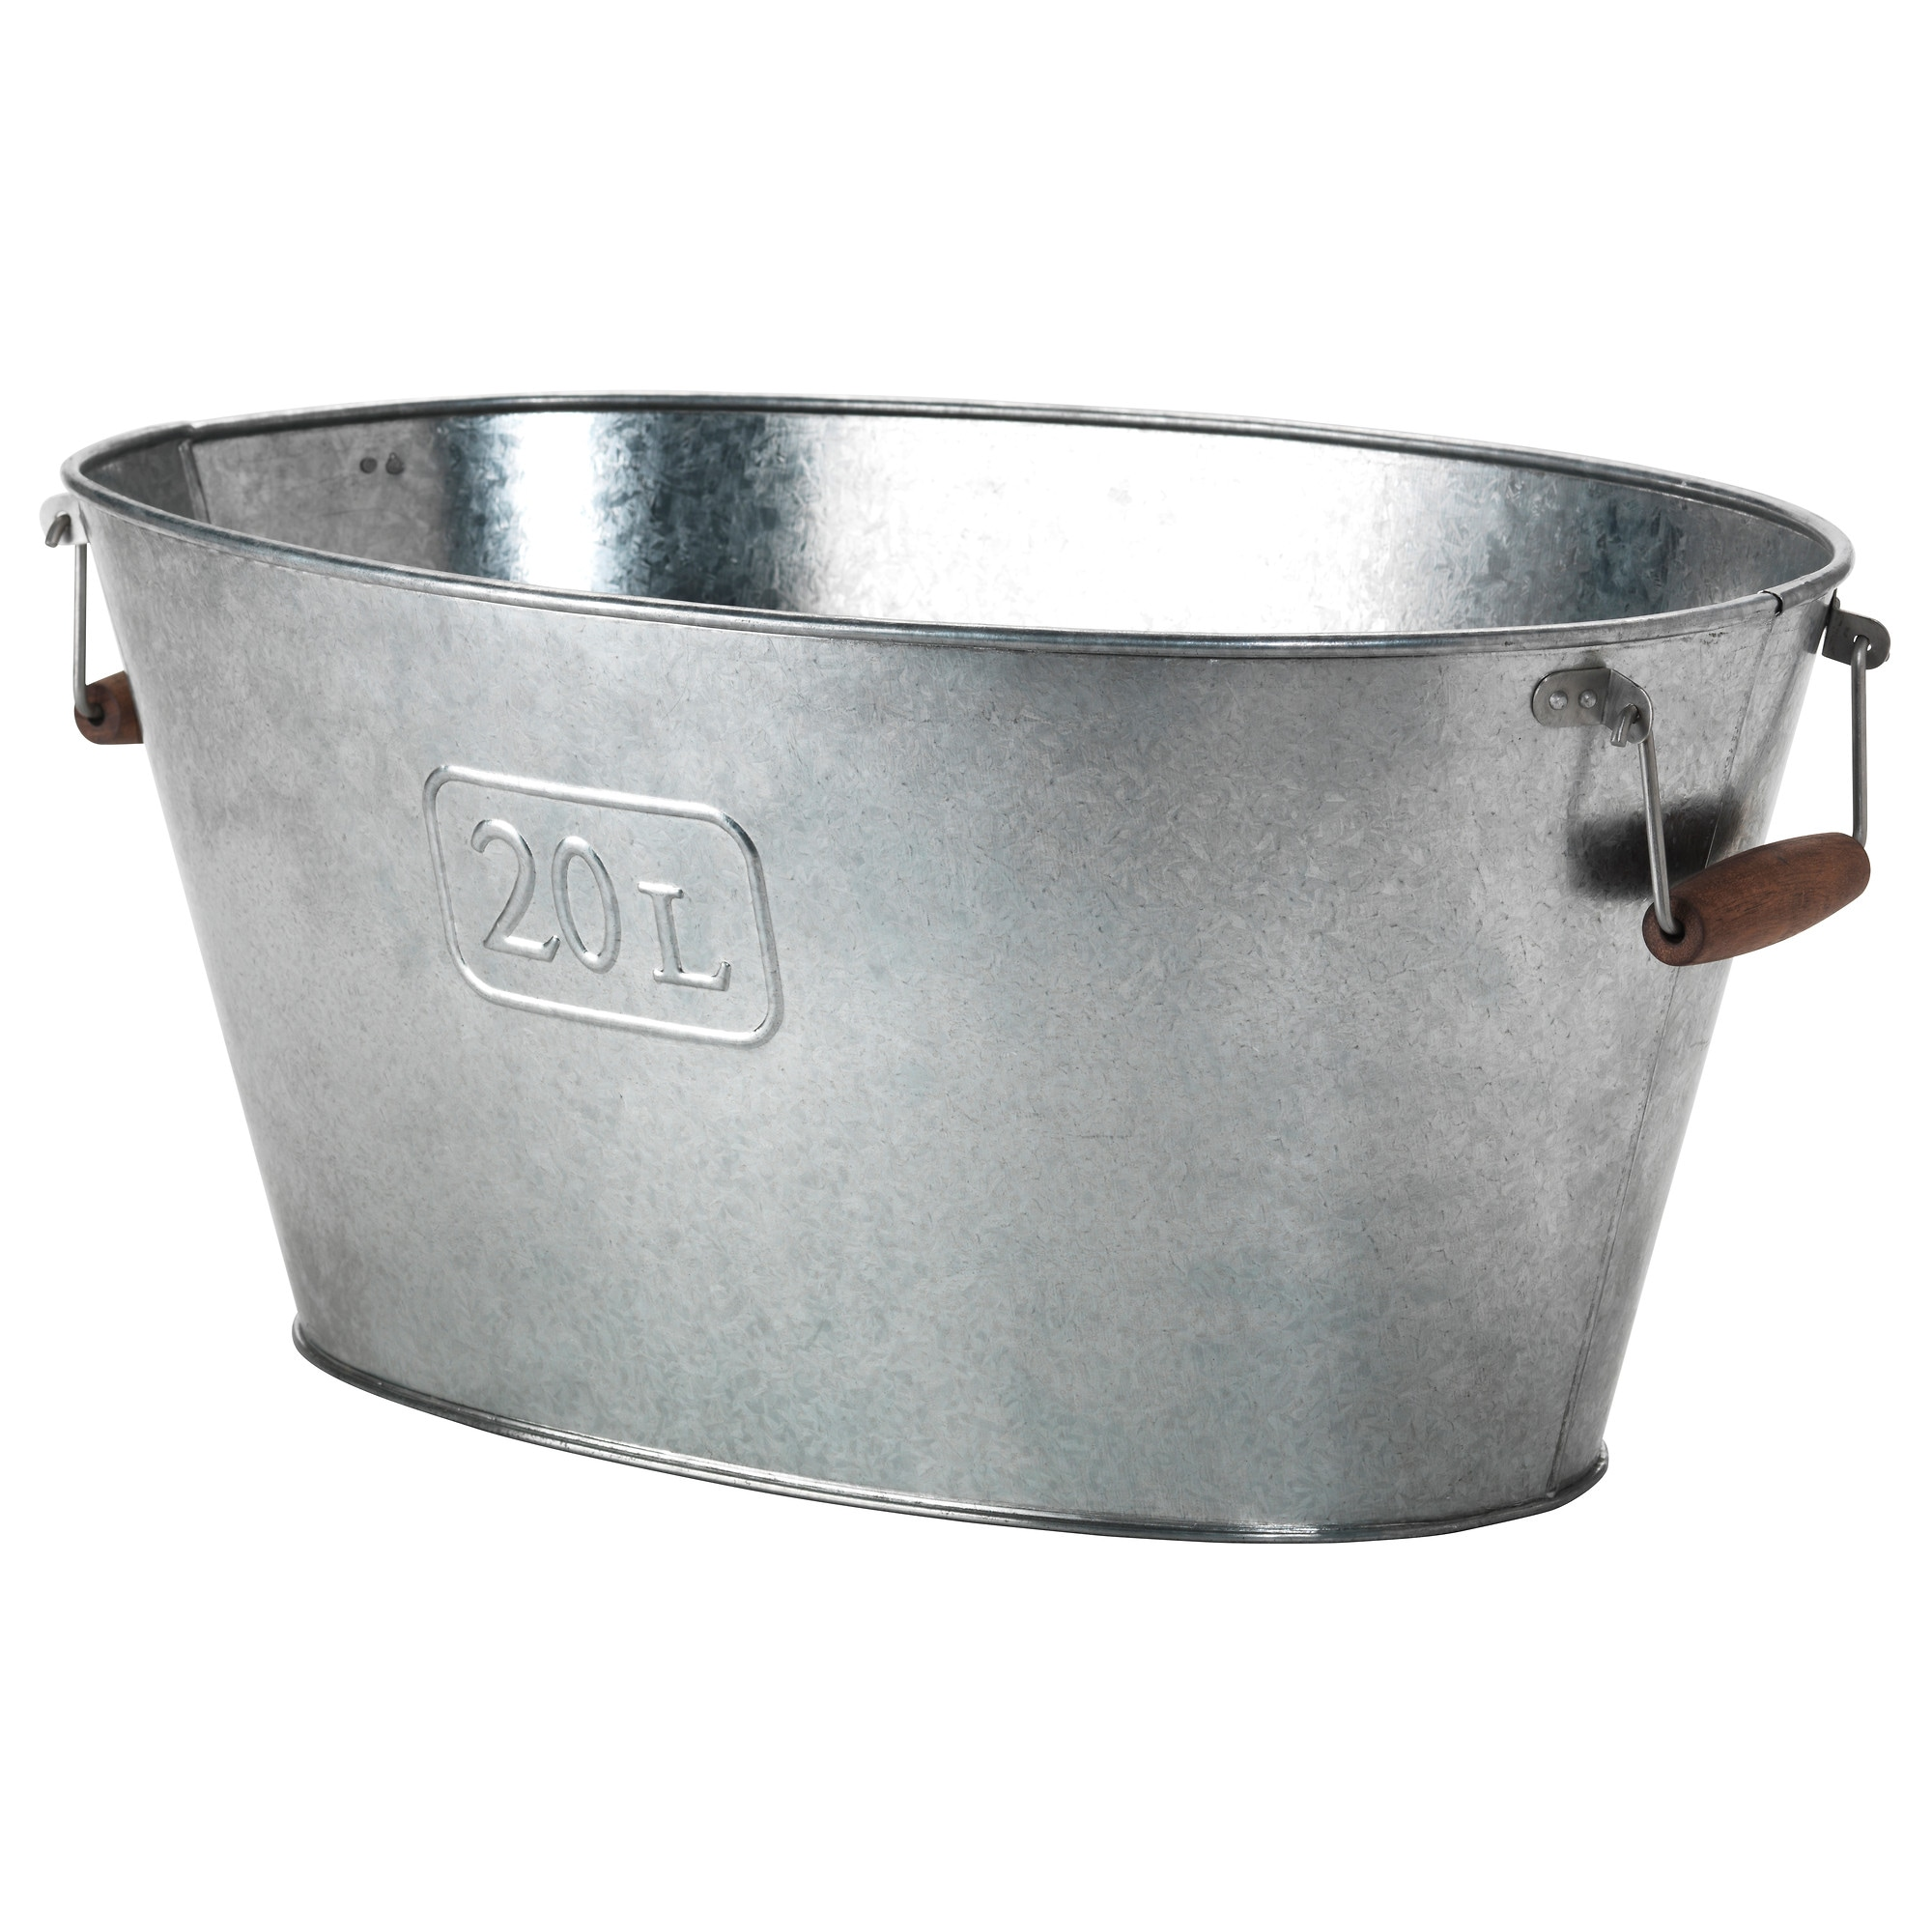 silver beverage for popular summer interesting fascinating tub fun metal enjoyable style galvanized with and ice drink furnitures stand bucket exterior your awesome picture files